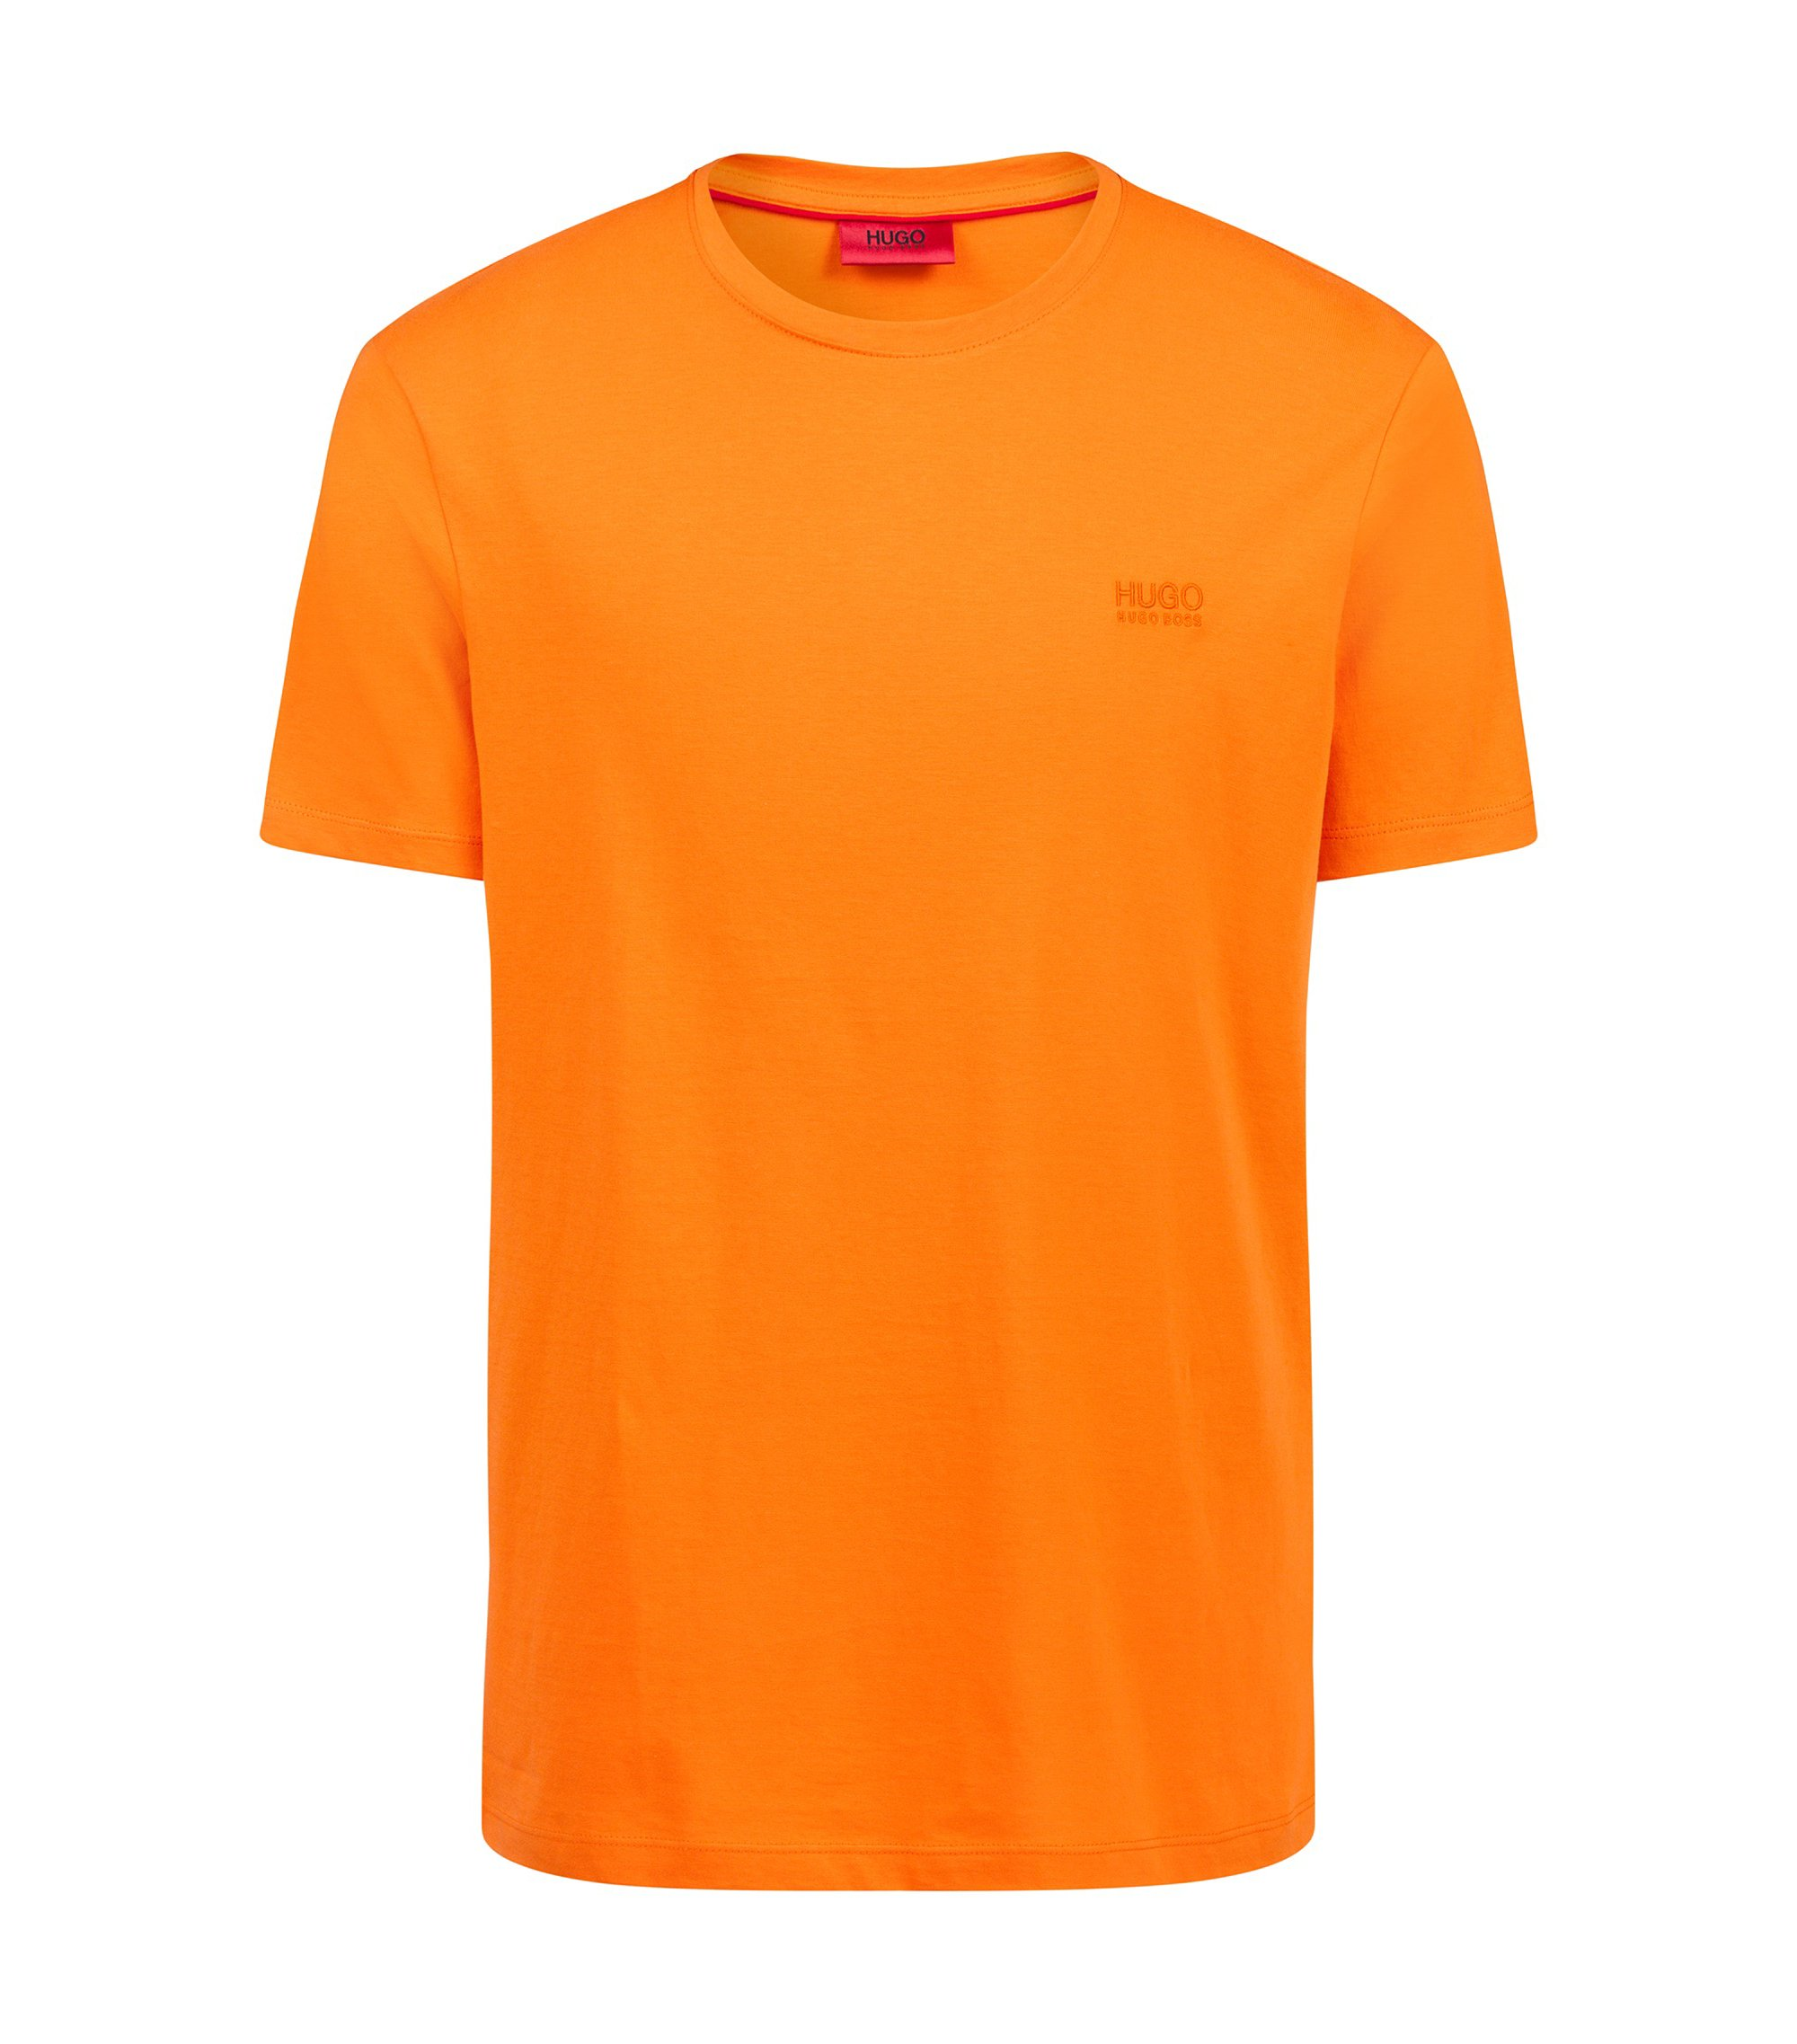 Regular-Fit T-Shirt aus weicher Baumwolle mit Logo, Orange